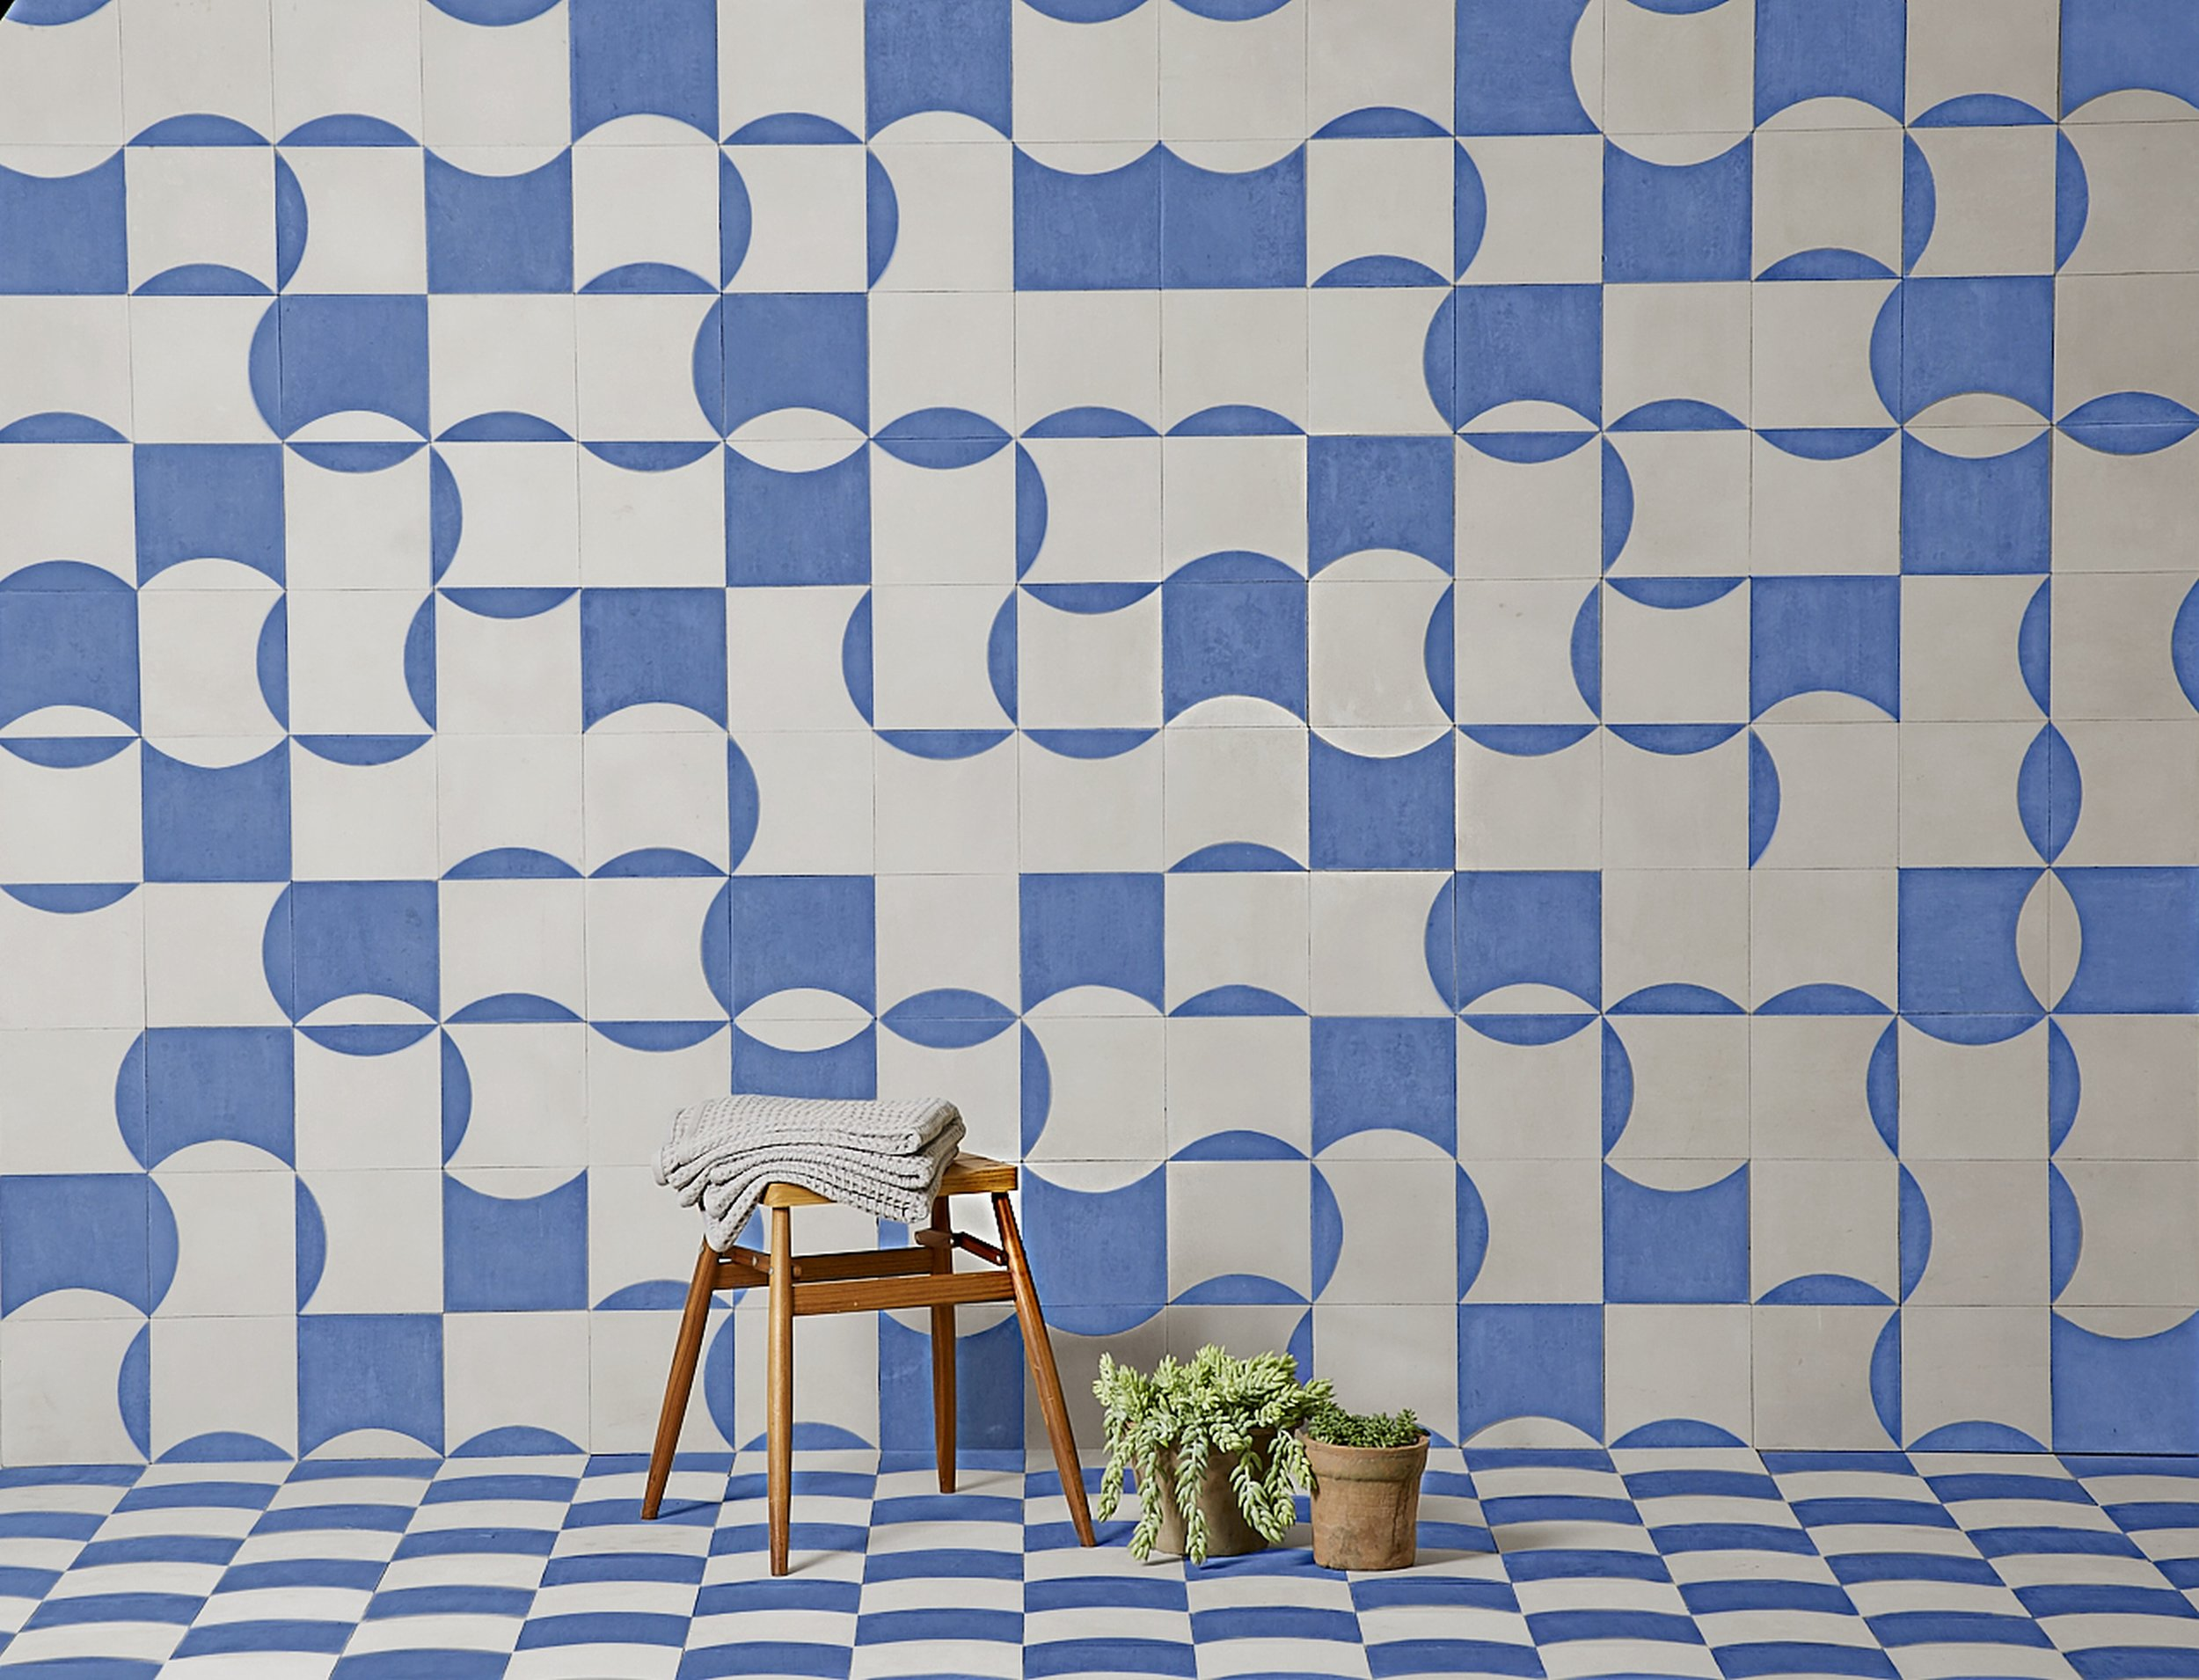 Bert & May x The Conran Shop curve and inverse curve tile in Blue